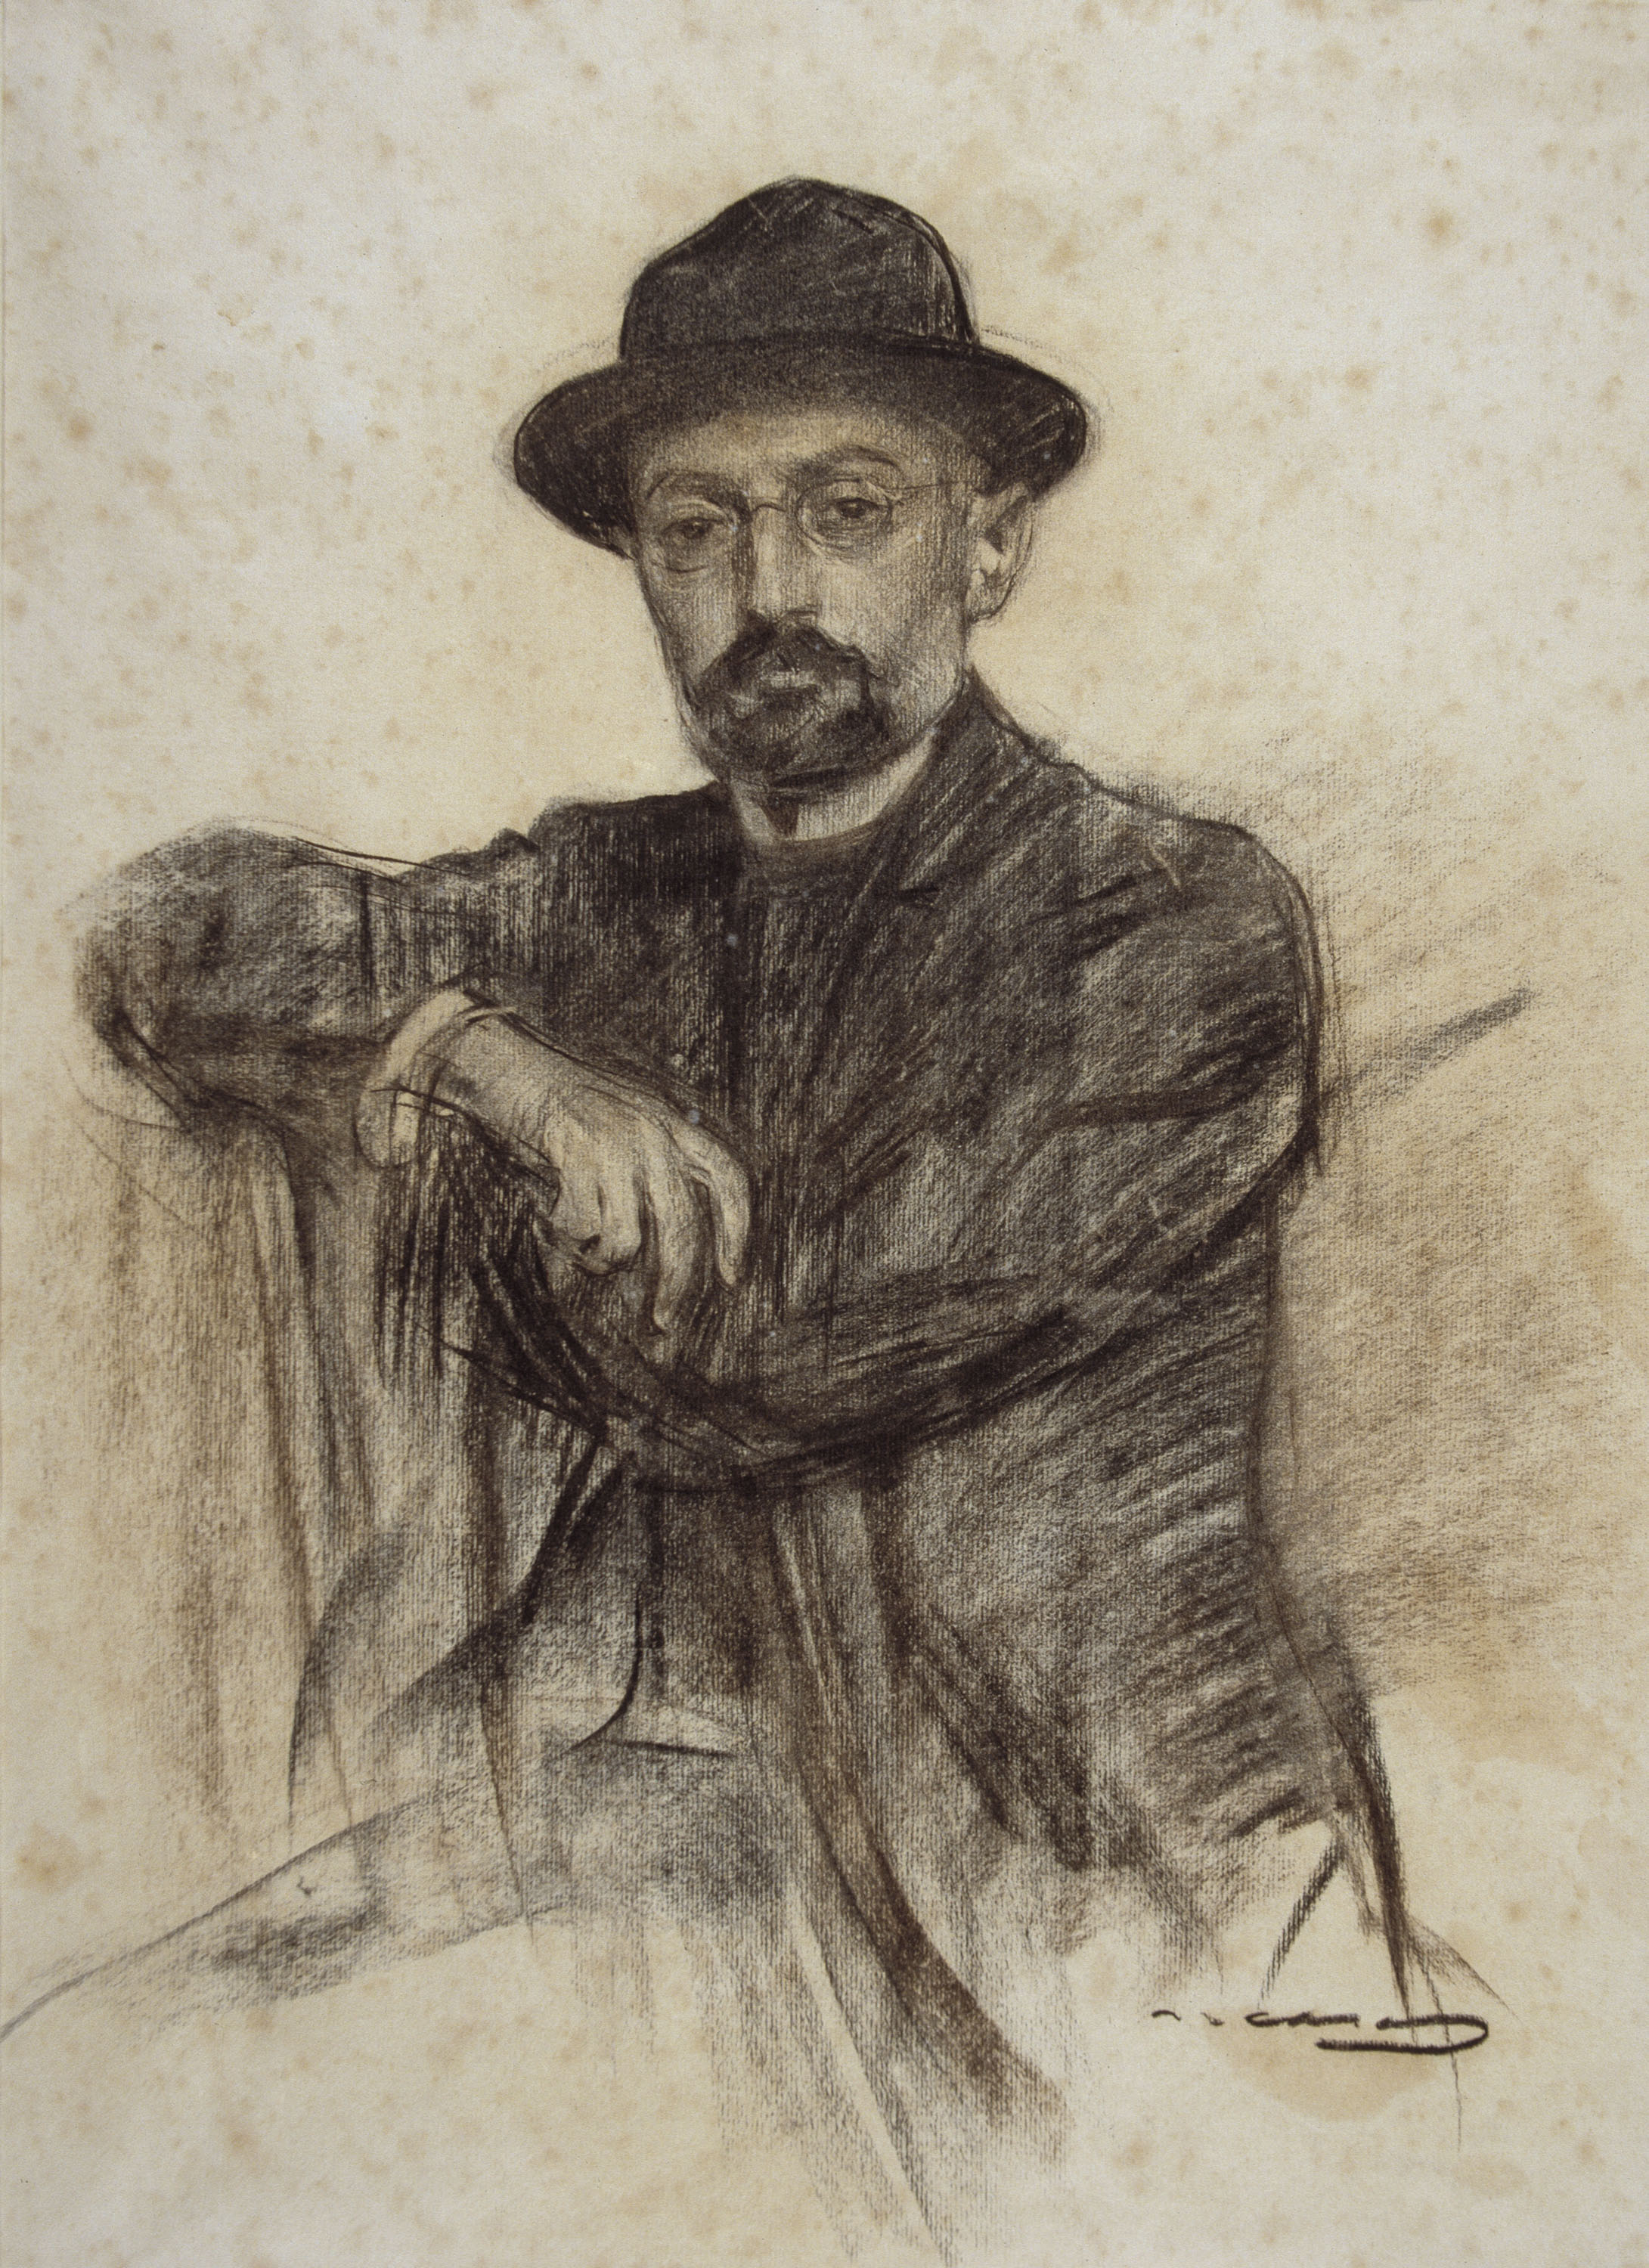 Writer Miguel de Unamuno, charcoal on paper, 1904-05, Ramon Casas